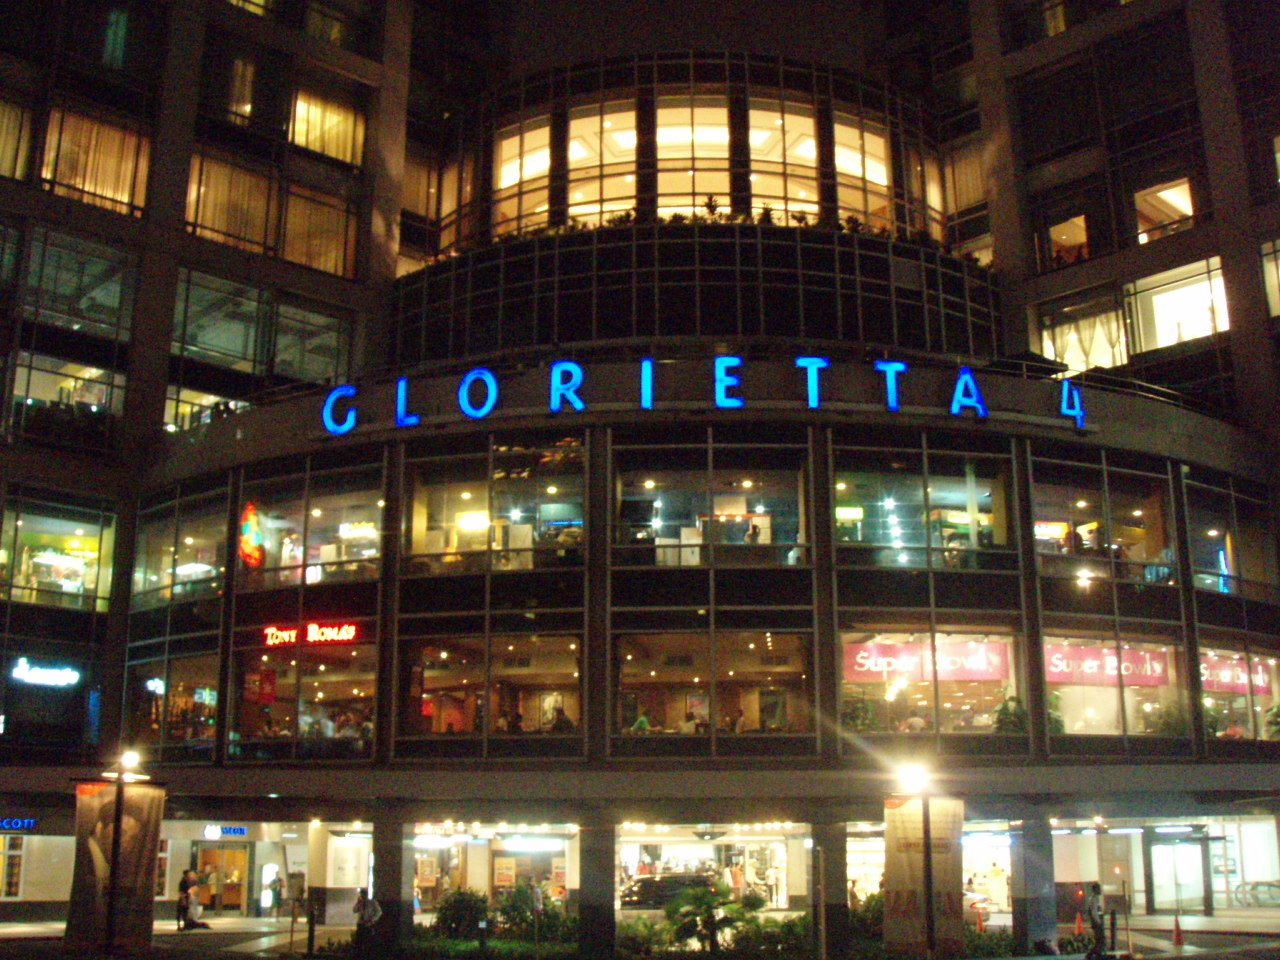 At the heart of the mall is an atrium which serves as a venue for exhibits, fashion shows, and other big events. The Glorietta Mall is also linked to nearby malls: The Landmark and SM Makati. This mall previously received the Shopping Center of the Year Award in and